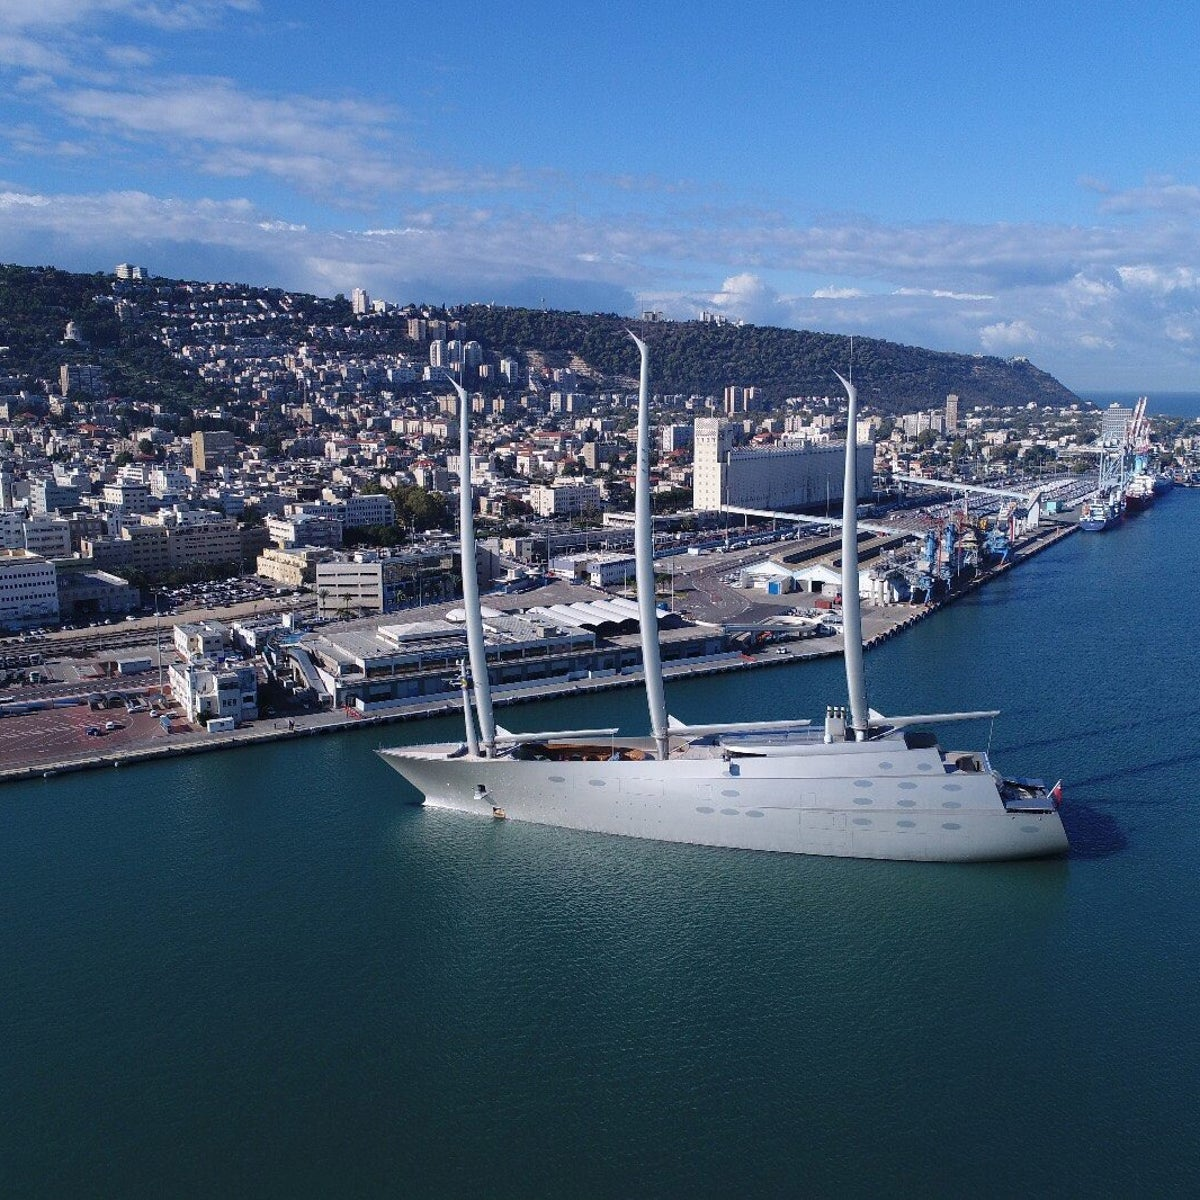 The world's largest sailing yacht anchoring in the Haifa Port on Nov. 24, 2017.